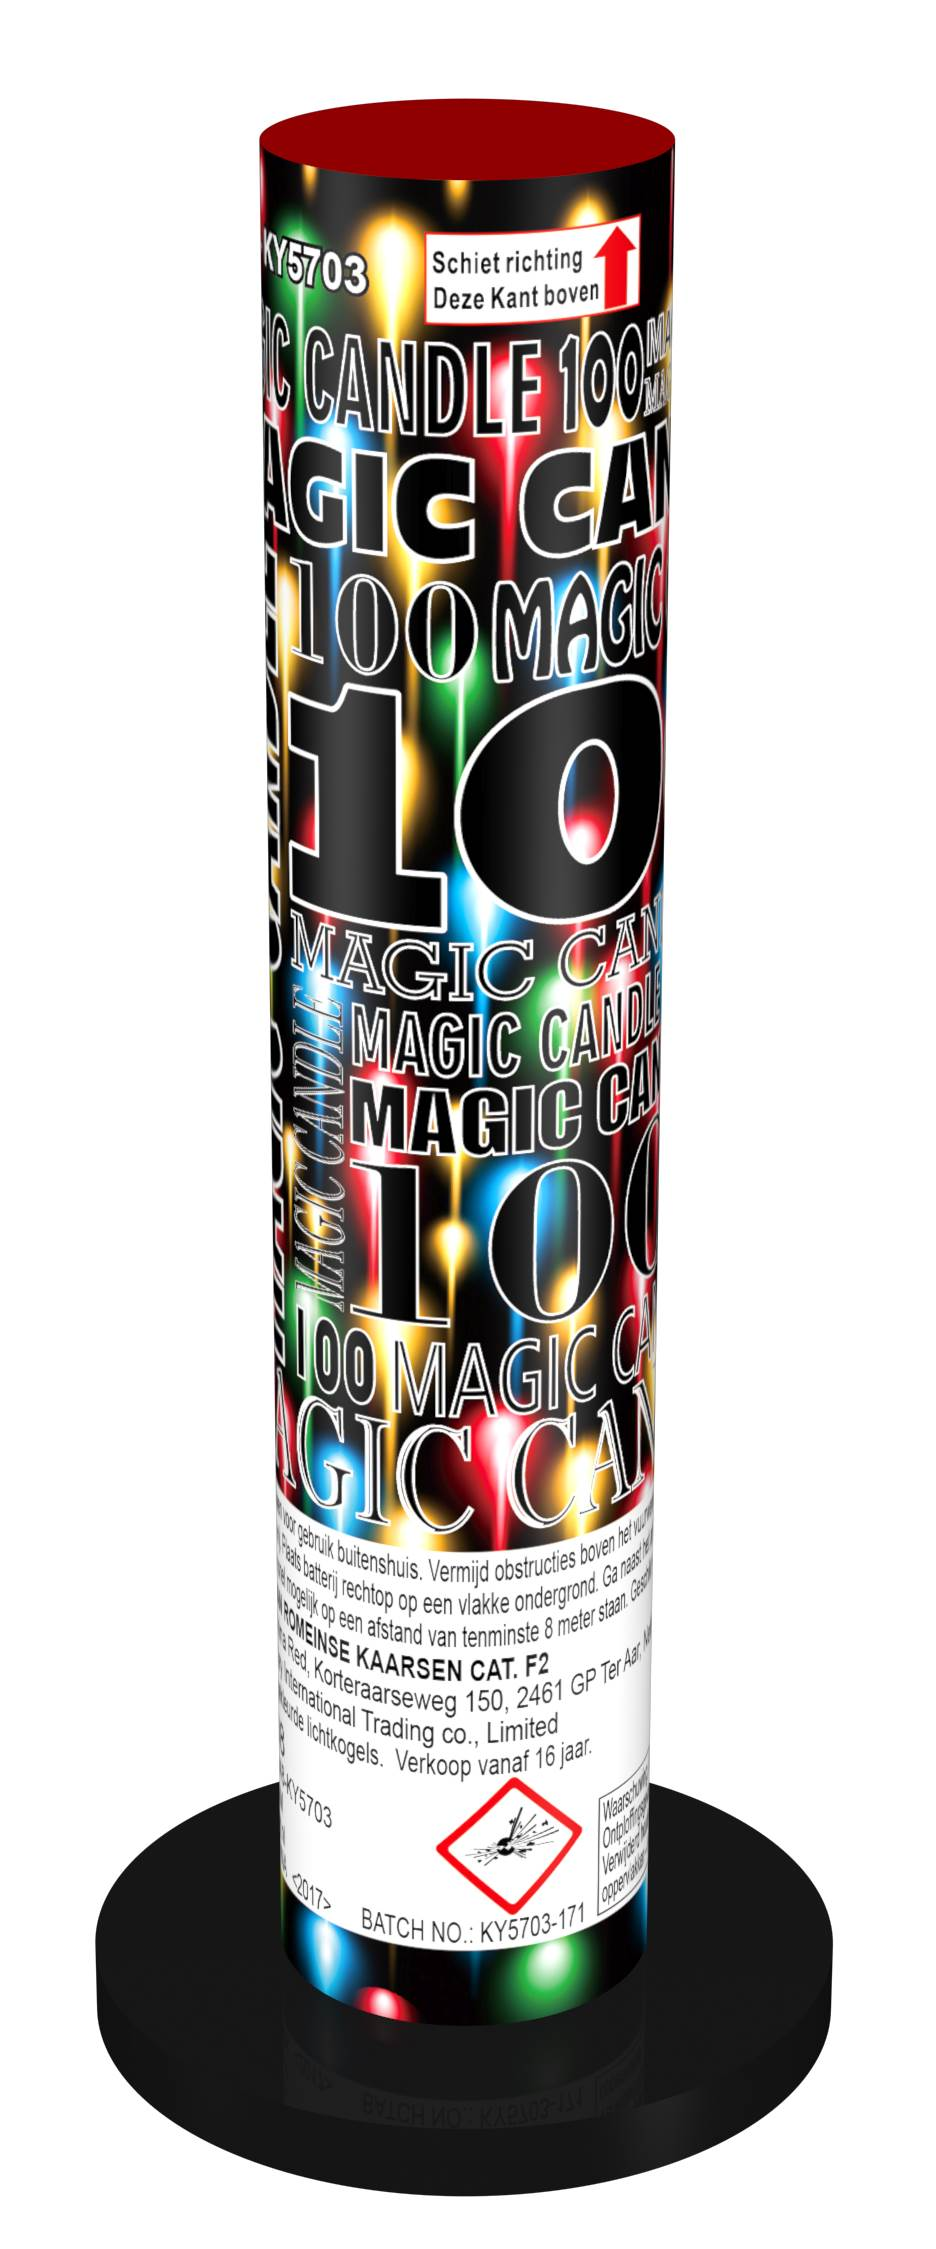 Magic Candle 100